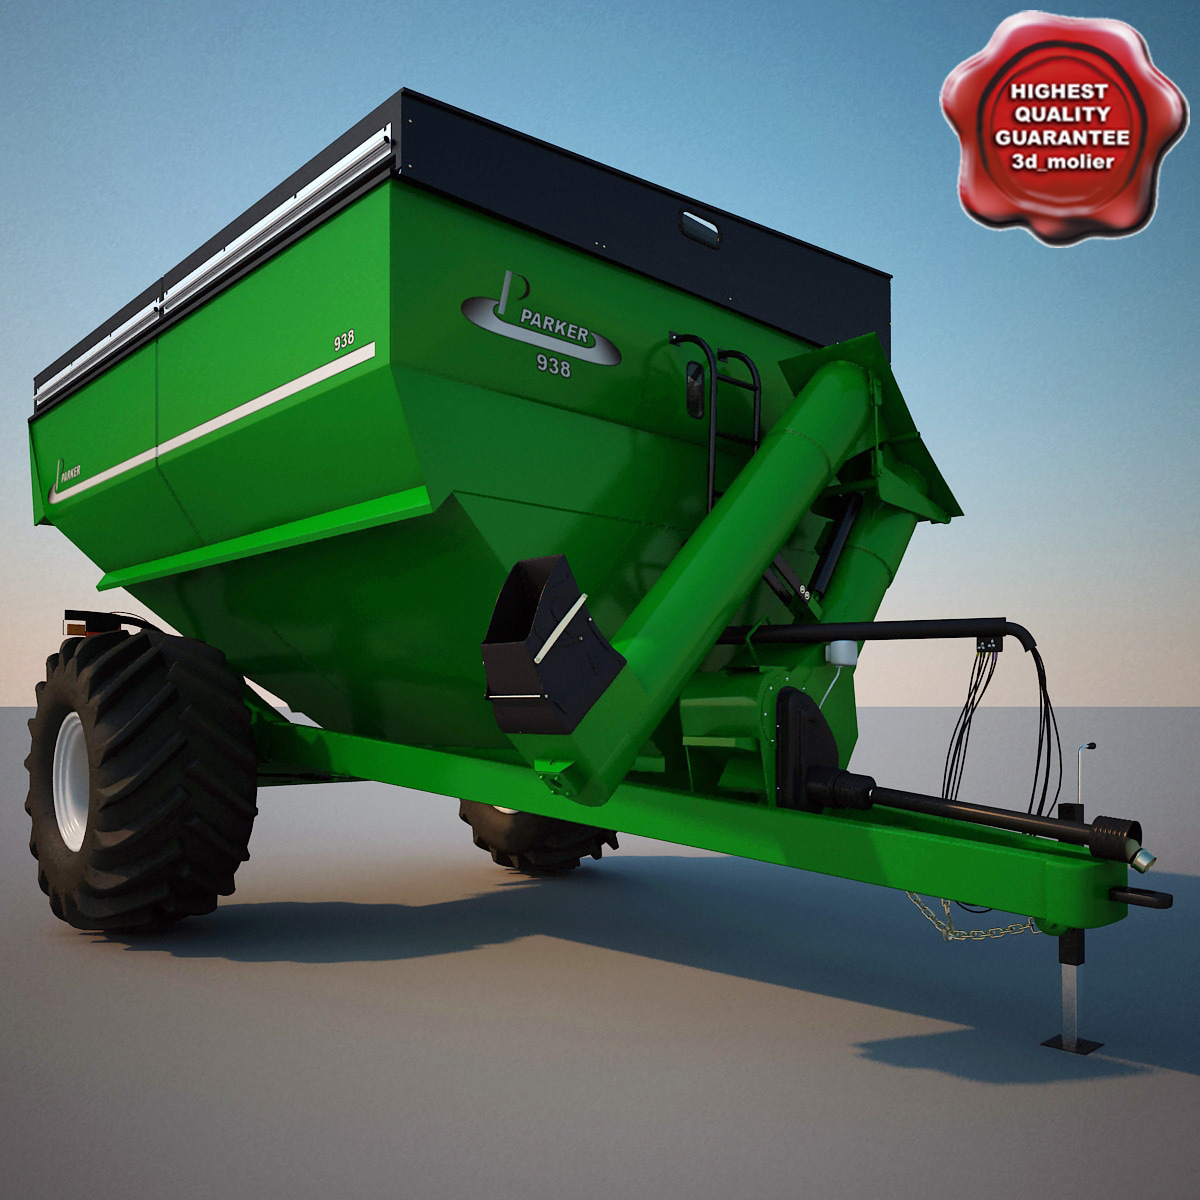 Farm_Grain_Cart_Parker_938_00.jpg